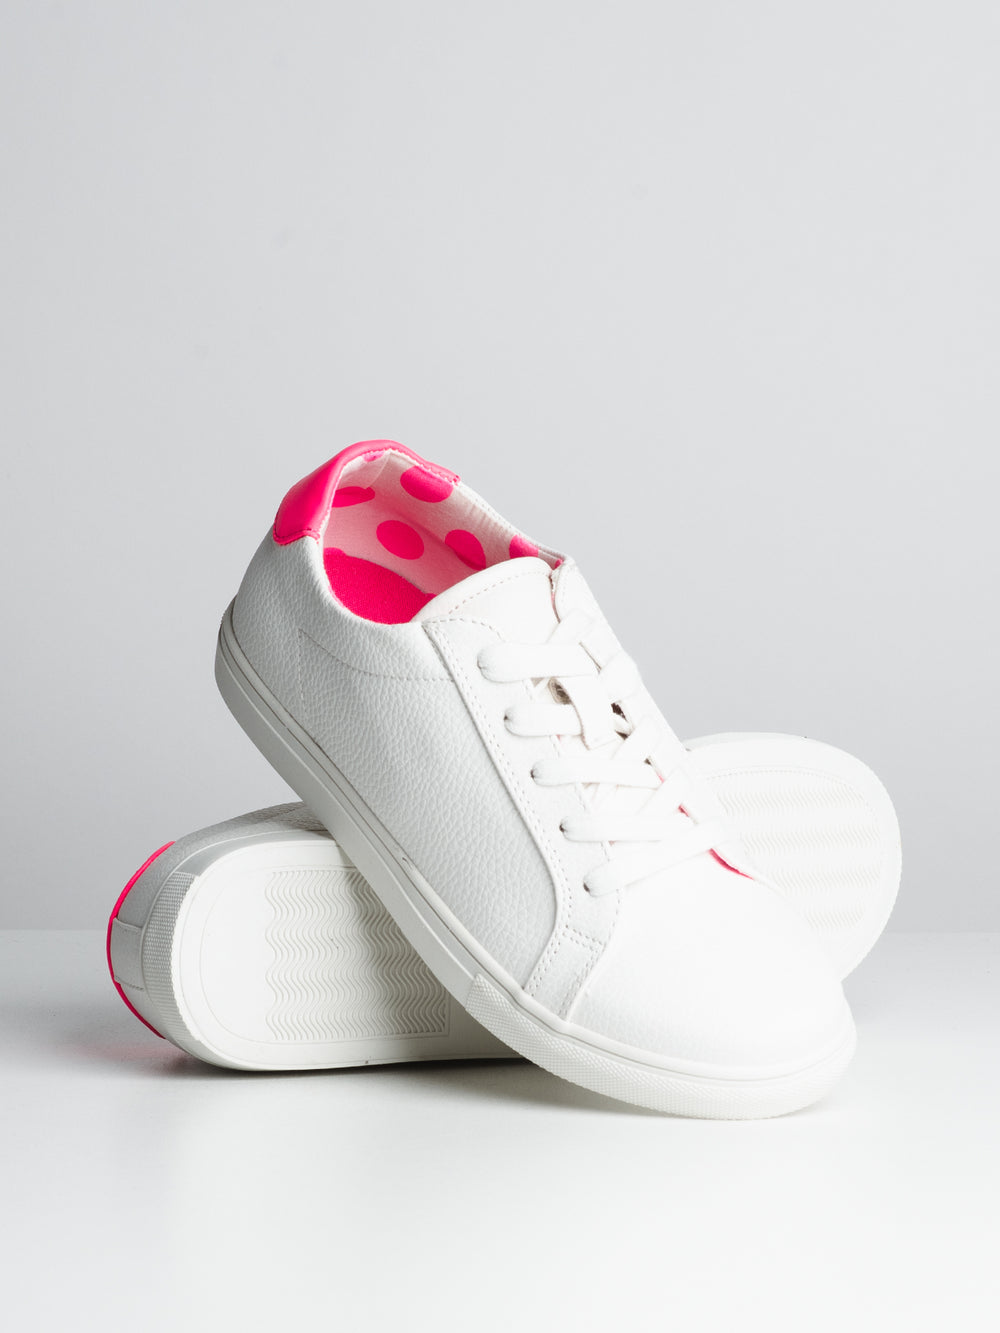 WOMENS KHLOE - WHITE-D1